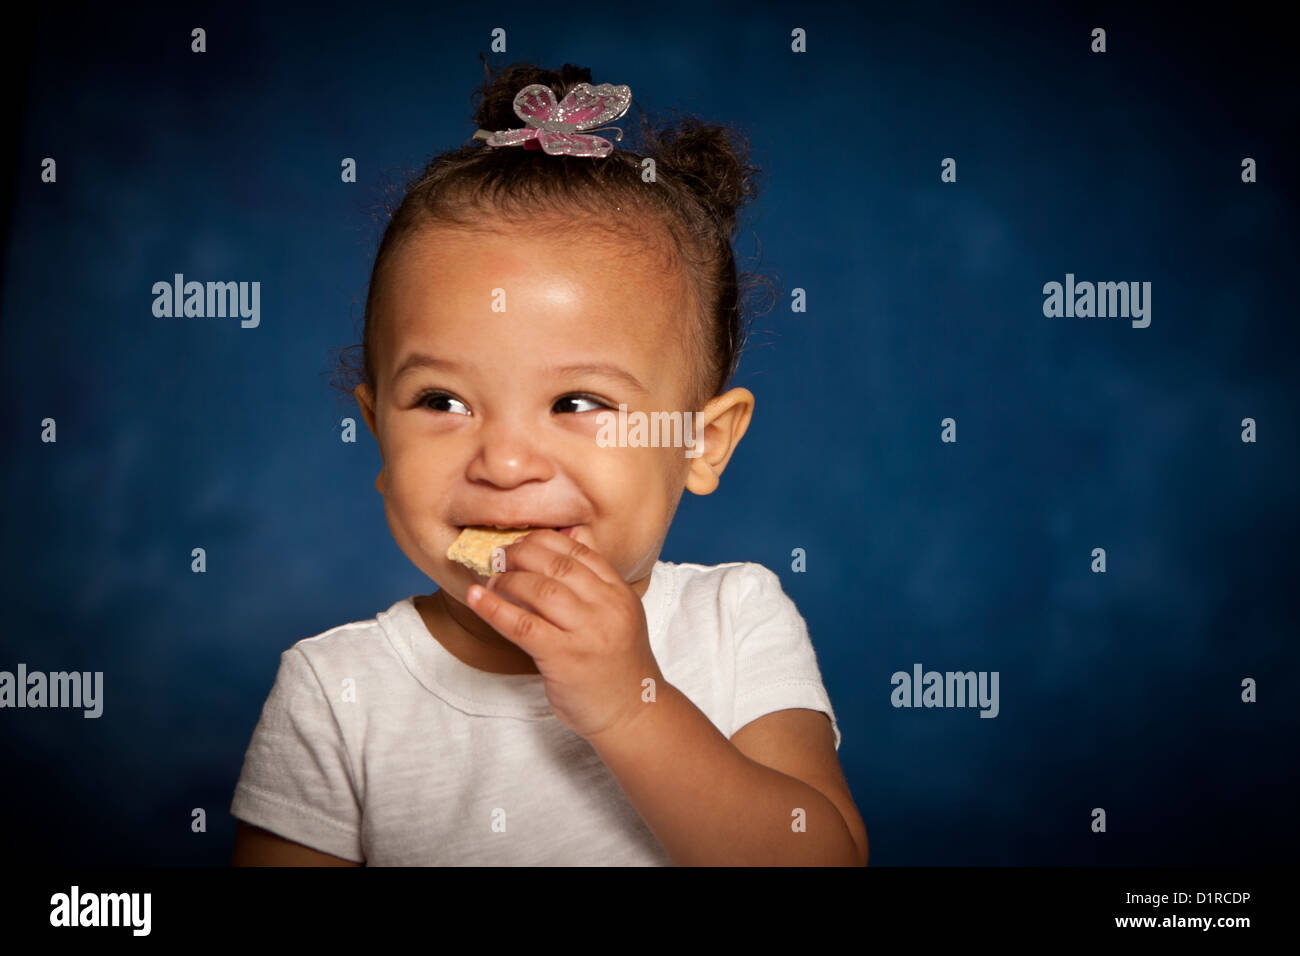 Cute studio portrait of a mixed race toddler girl eating a biscuit with a cheeky smile on her face - Stock Image